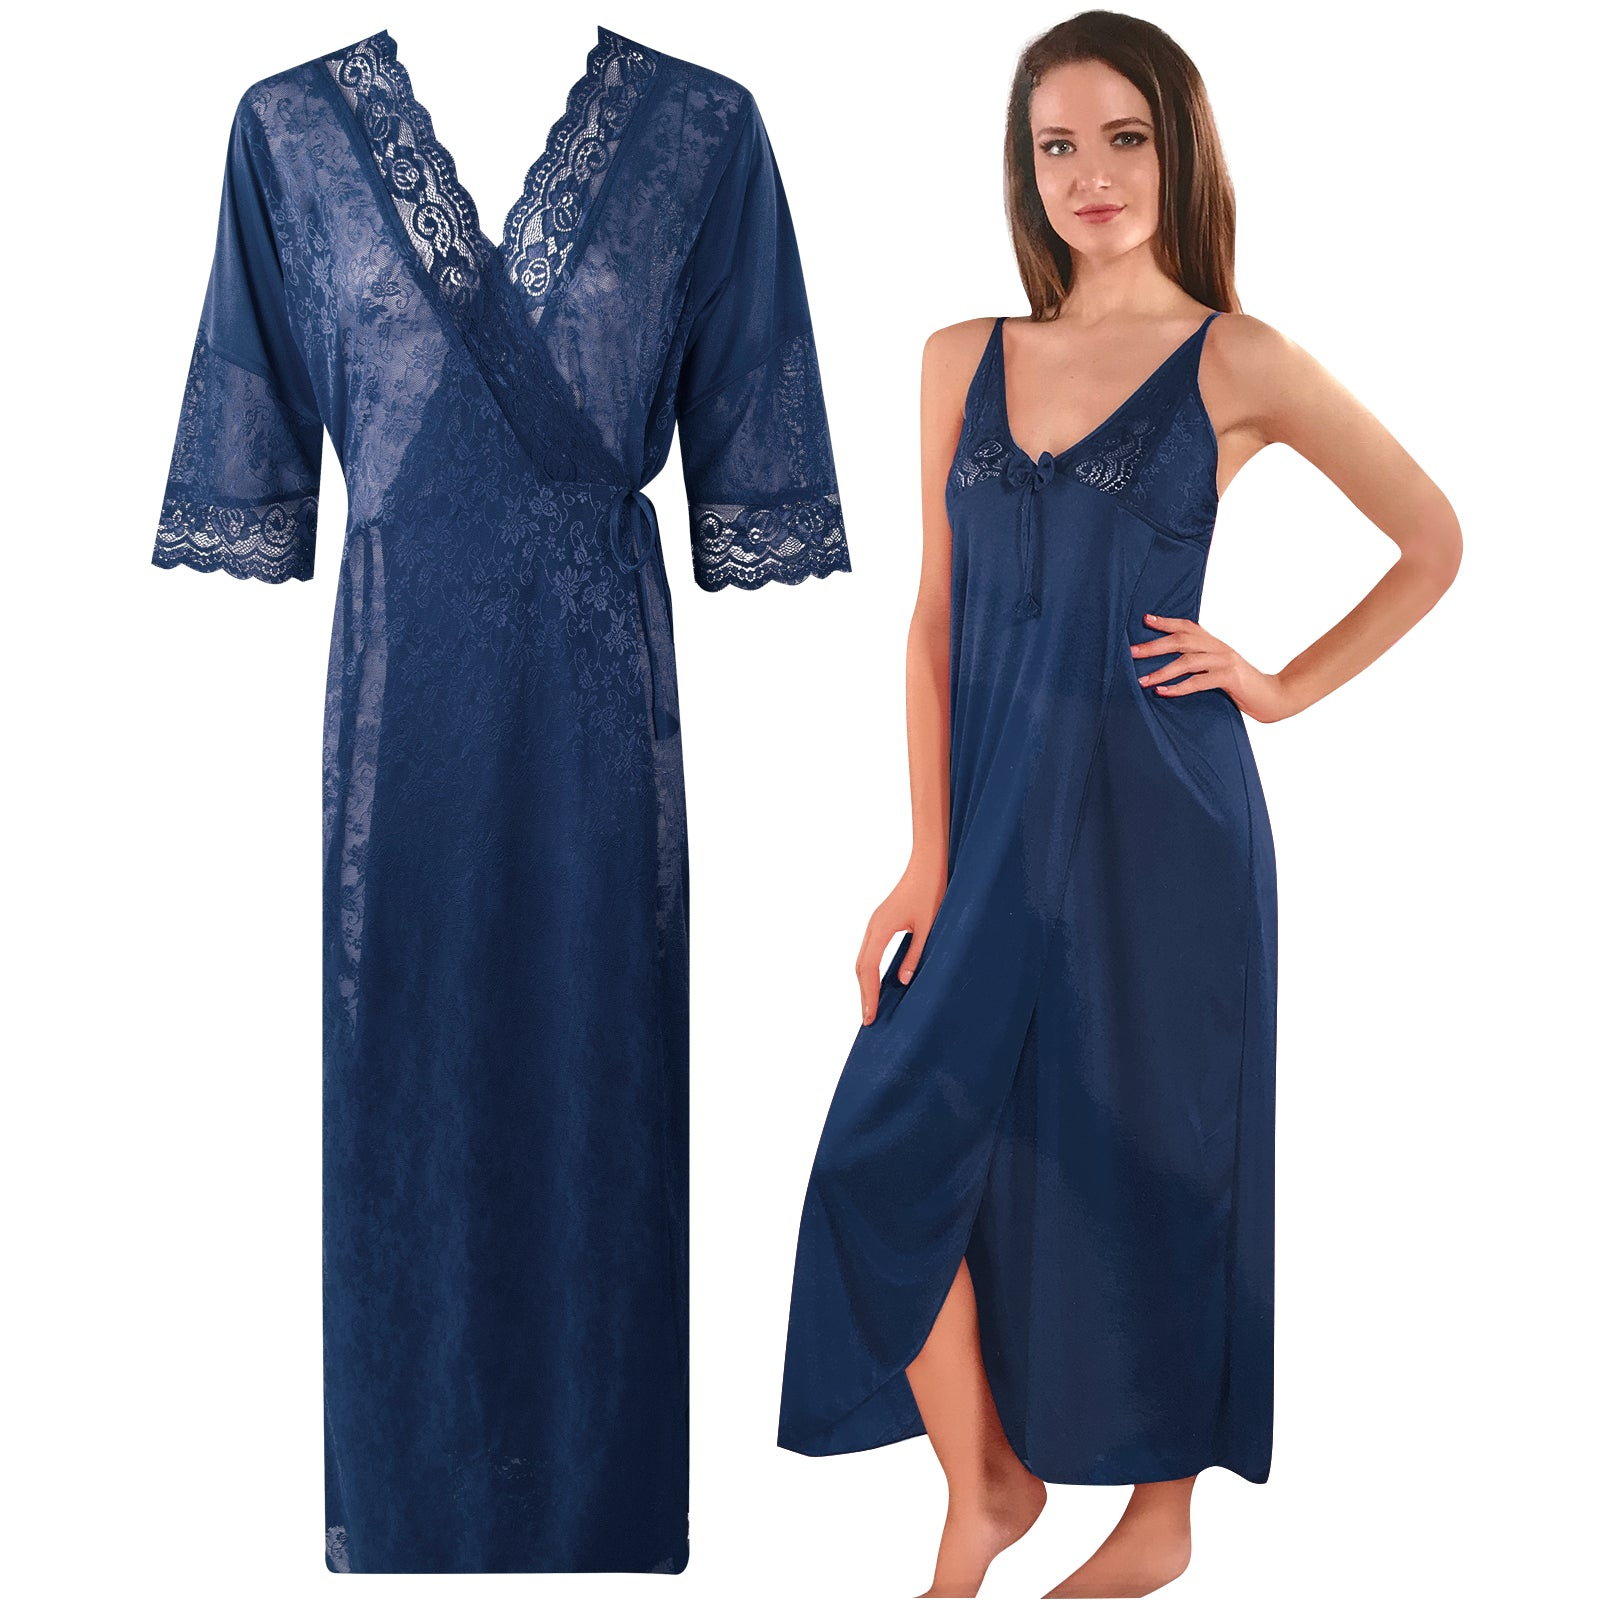 Womens 2 Pcs Satin Nightdress and Robe [colour]- Hautie UK, #Nightfashion | #Underfashion  SIZE 8 10 12 14 16 NAVY